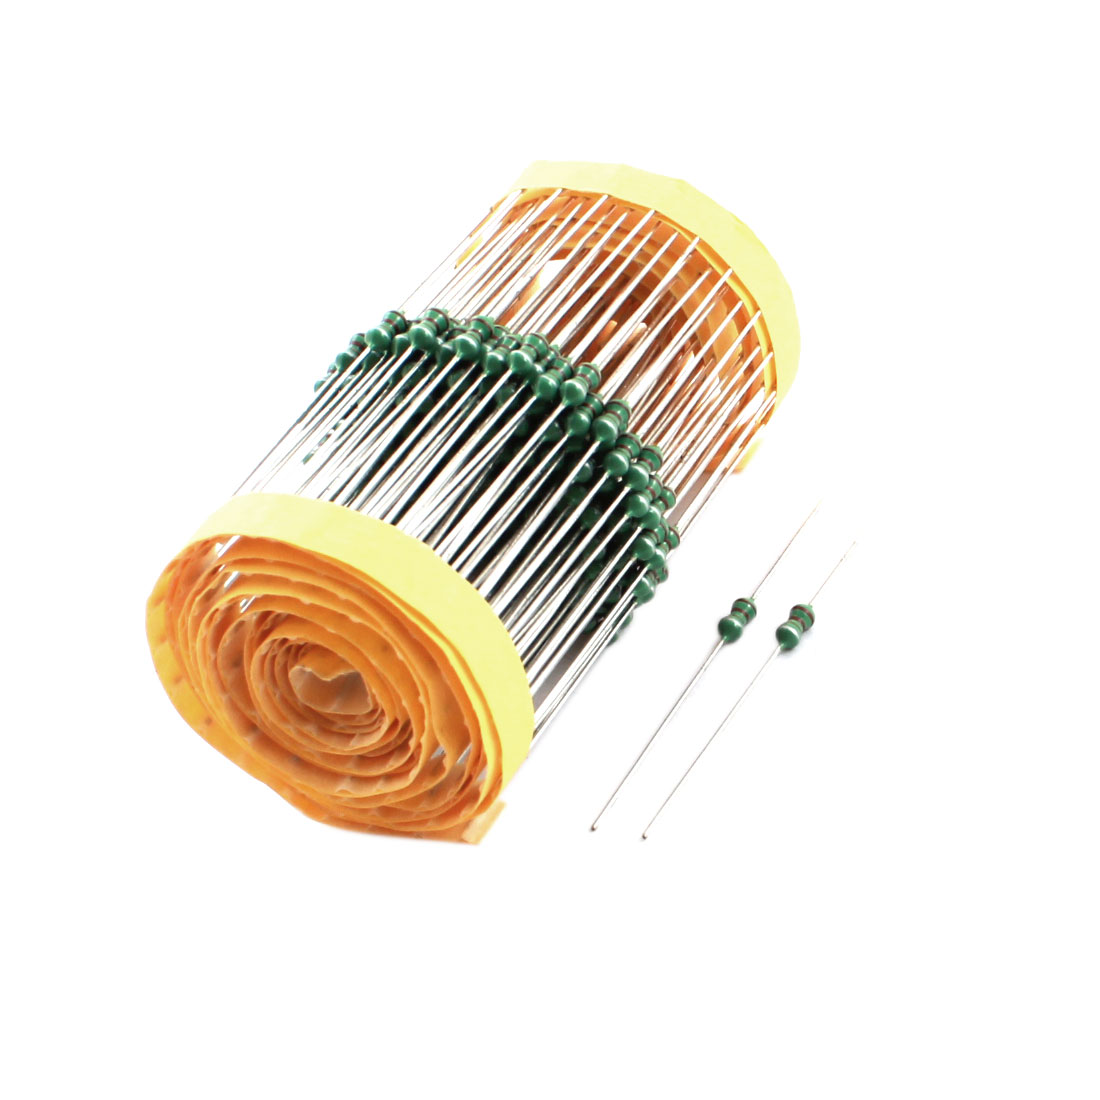 200Pcs Motherboard Parts 1/4W 2.2uH 10% Color Ring Inductors 0307 3x7mm